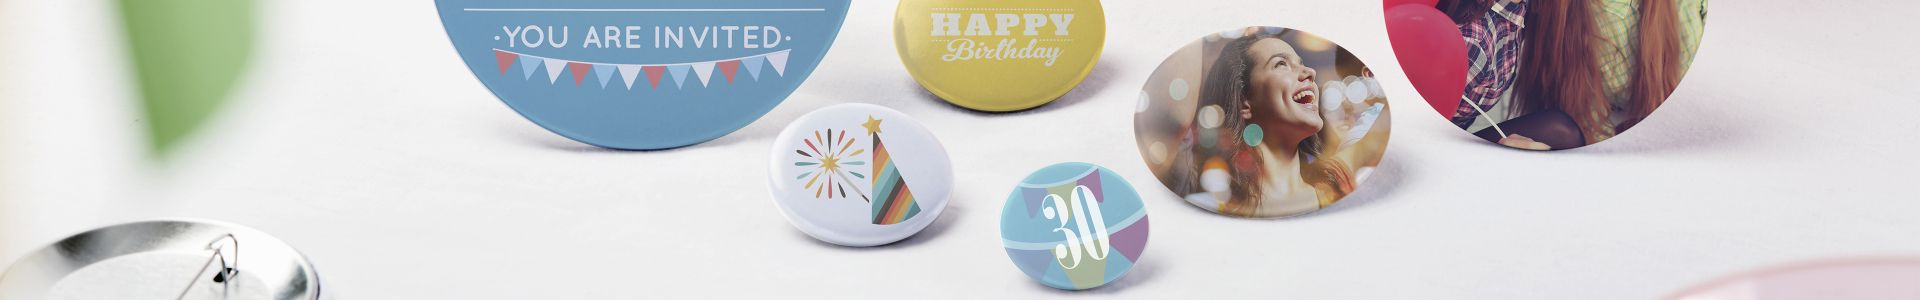 Buttons for parties and celebrations | Camaloon